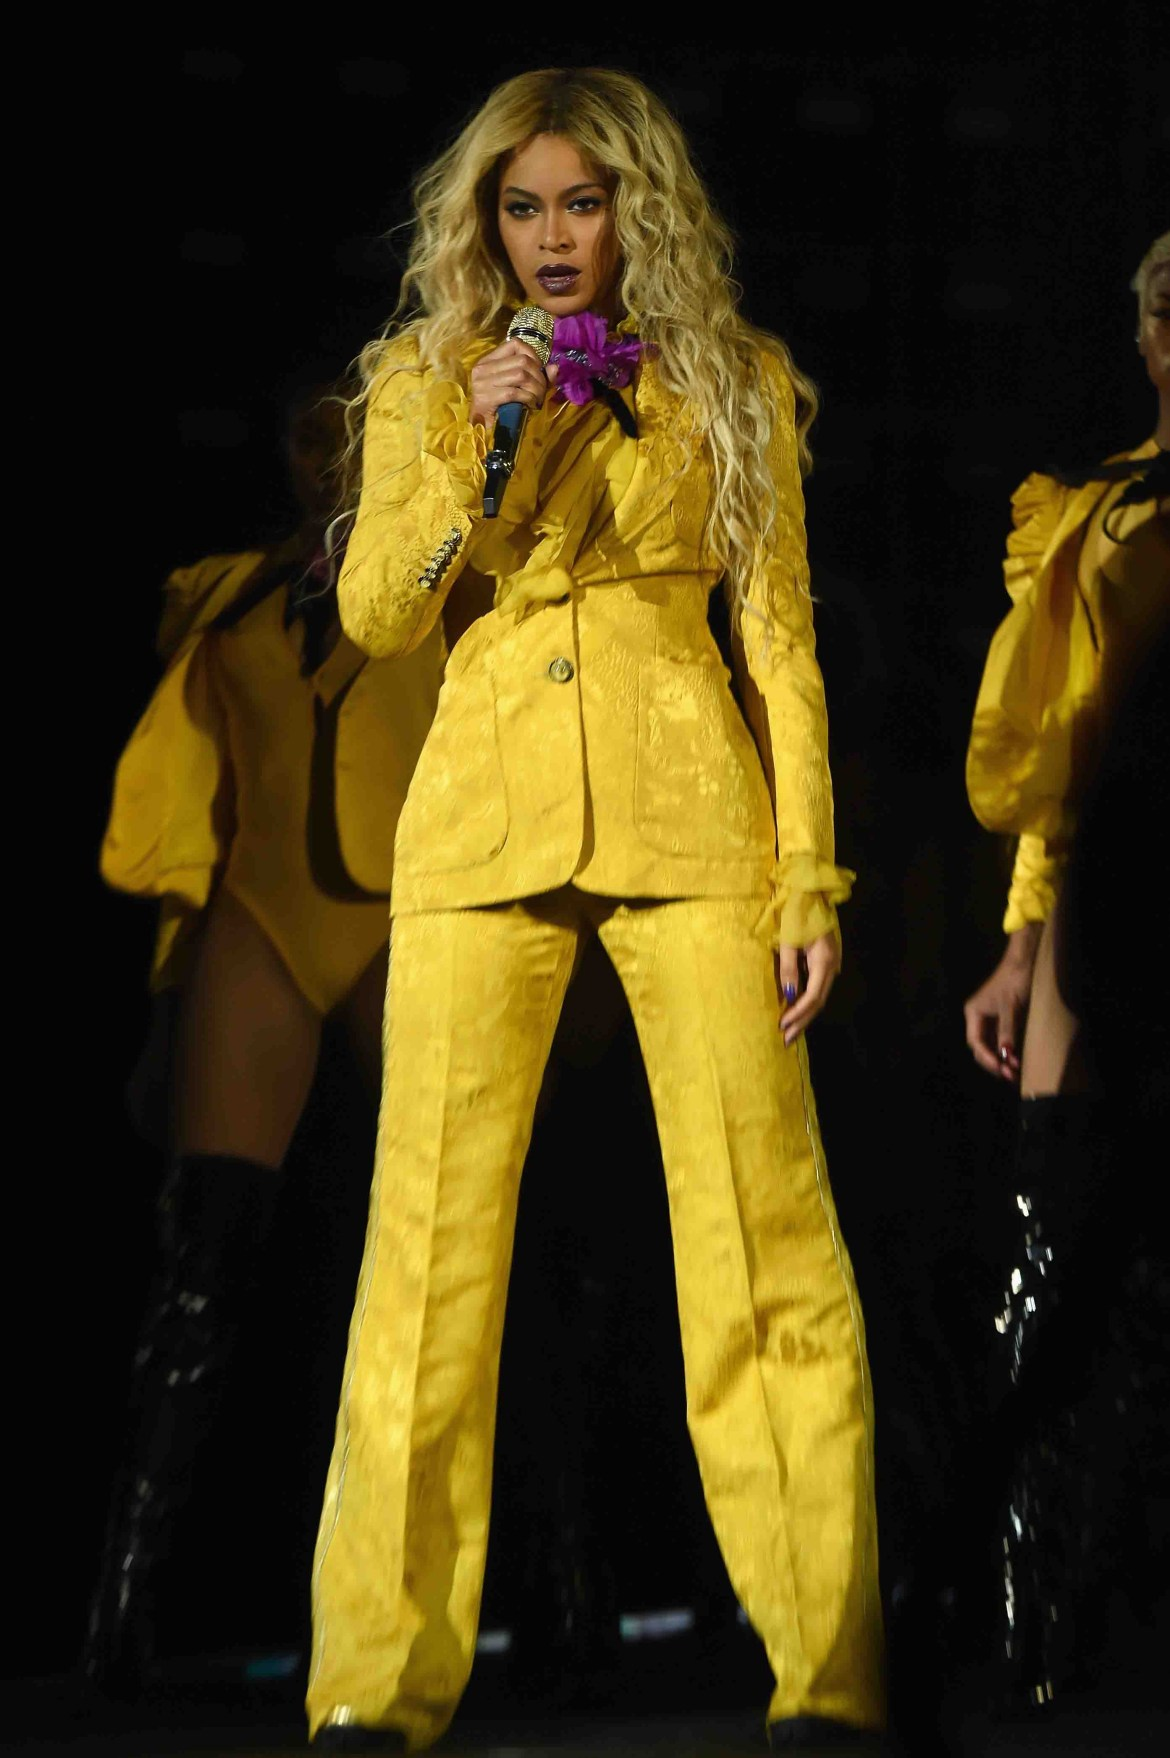 """EAST RUTHERFORD, NJ - OCTOBER 07: Entertainer Beyonce performs on stage during closing night of """"The Formation World Tour"""" at MetLife Stadium on October 7, 2016 in East Rutherford, New Jersey. (Photo by Larry Busacca/PW/WireImage)"""